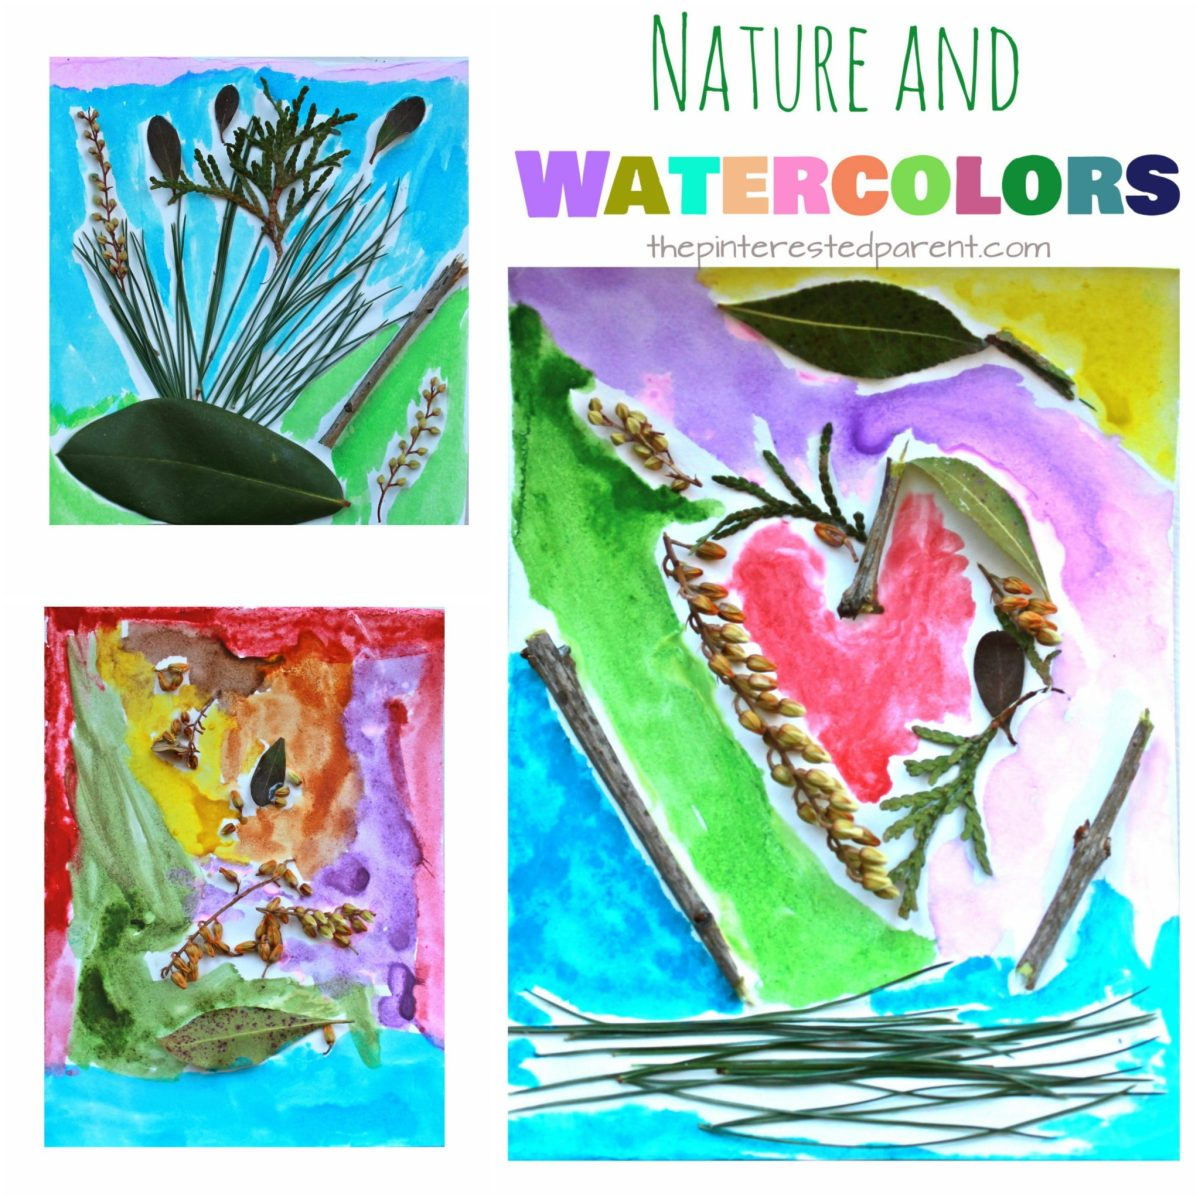 Nature and Watercolors